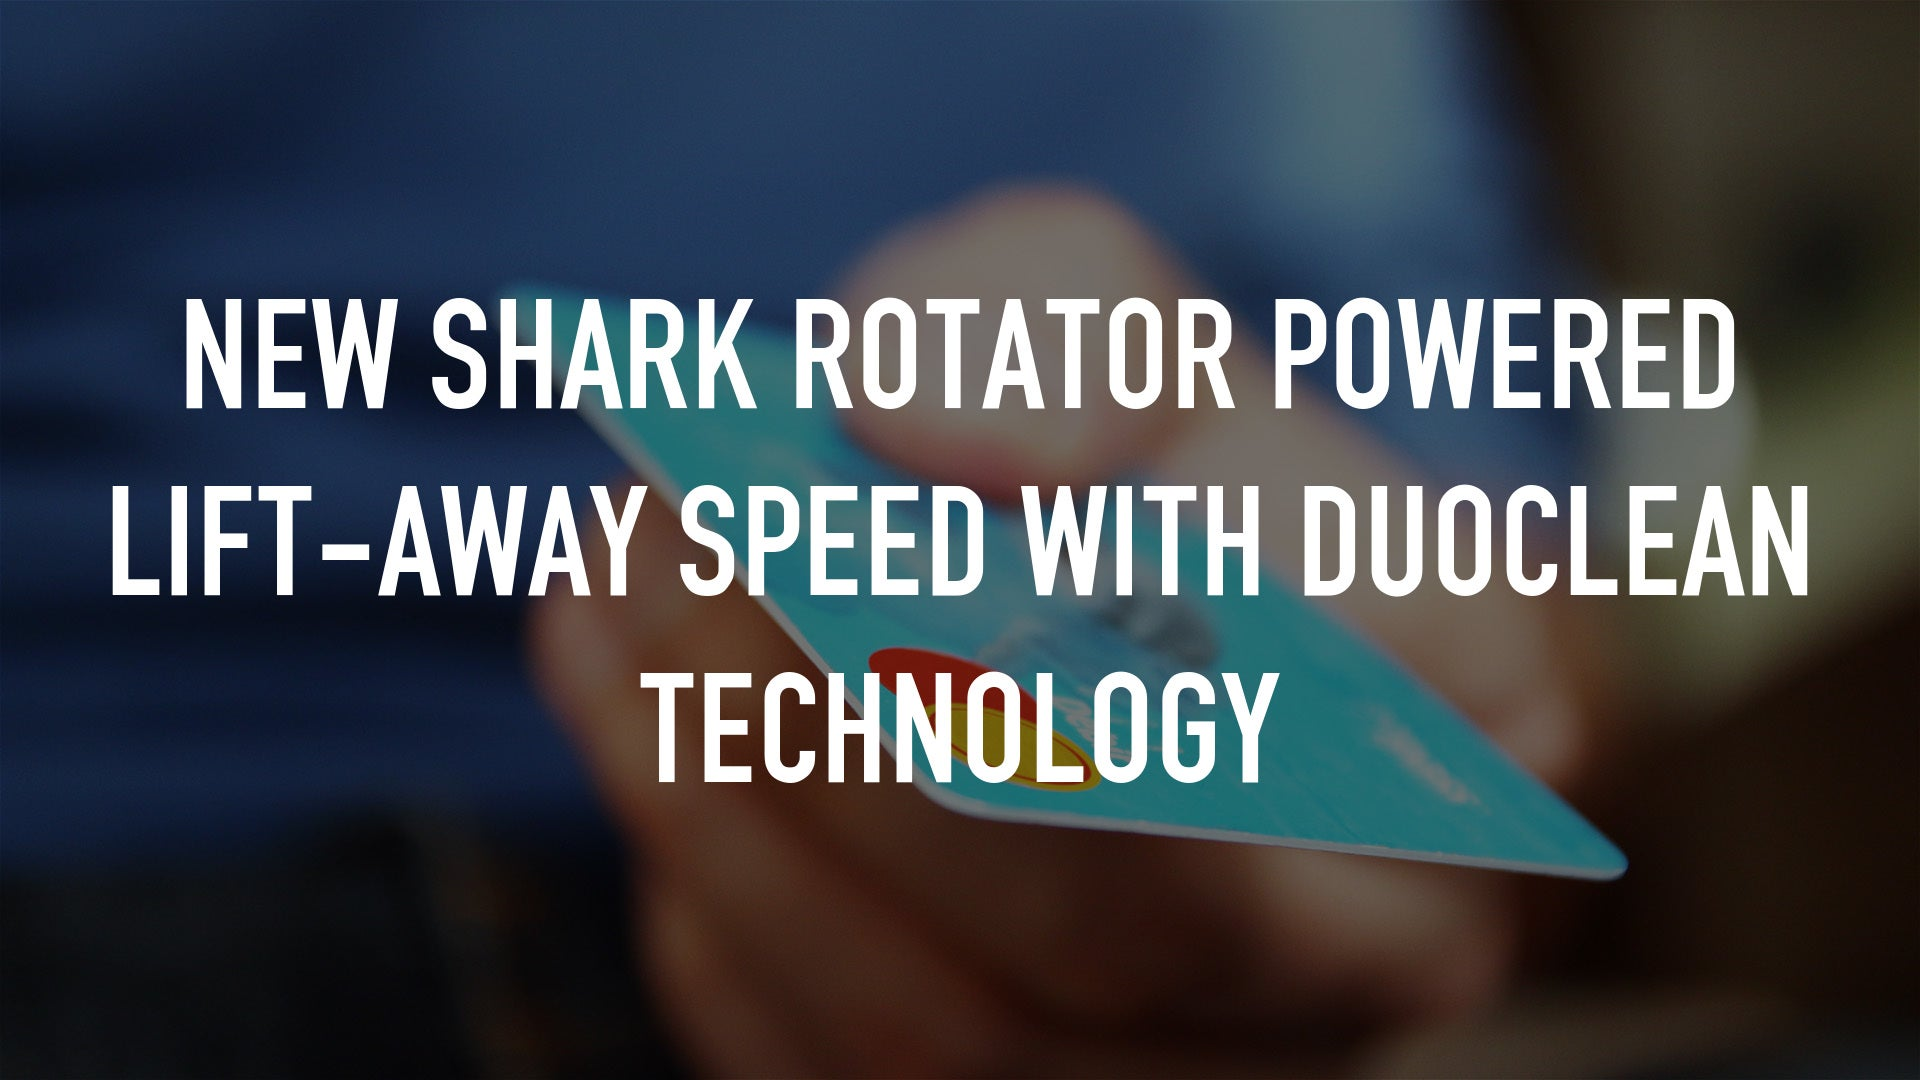 NEW Shark Rotator Powered Lift-Away Speed with DuoClean Technology